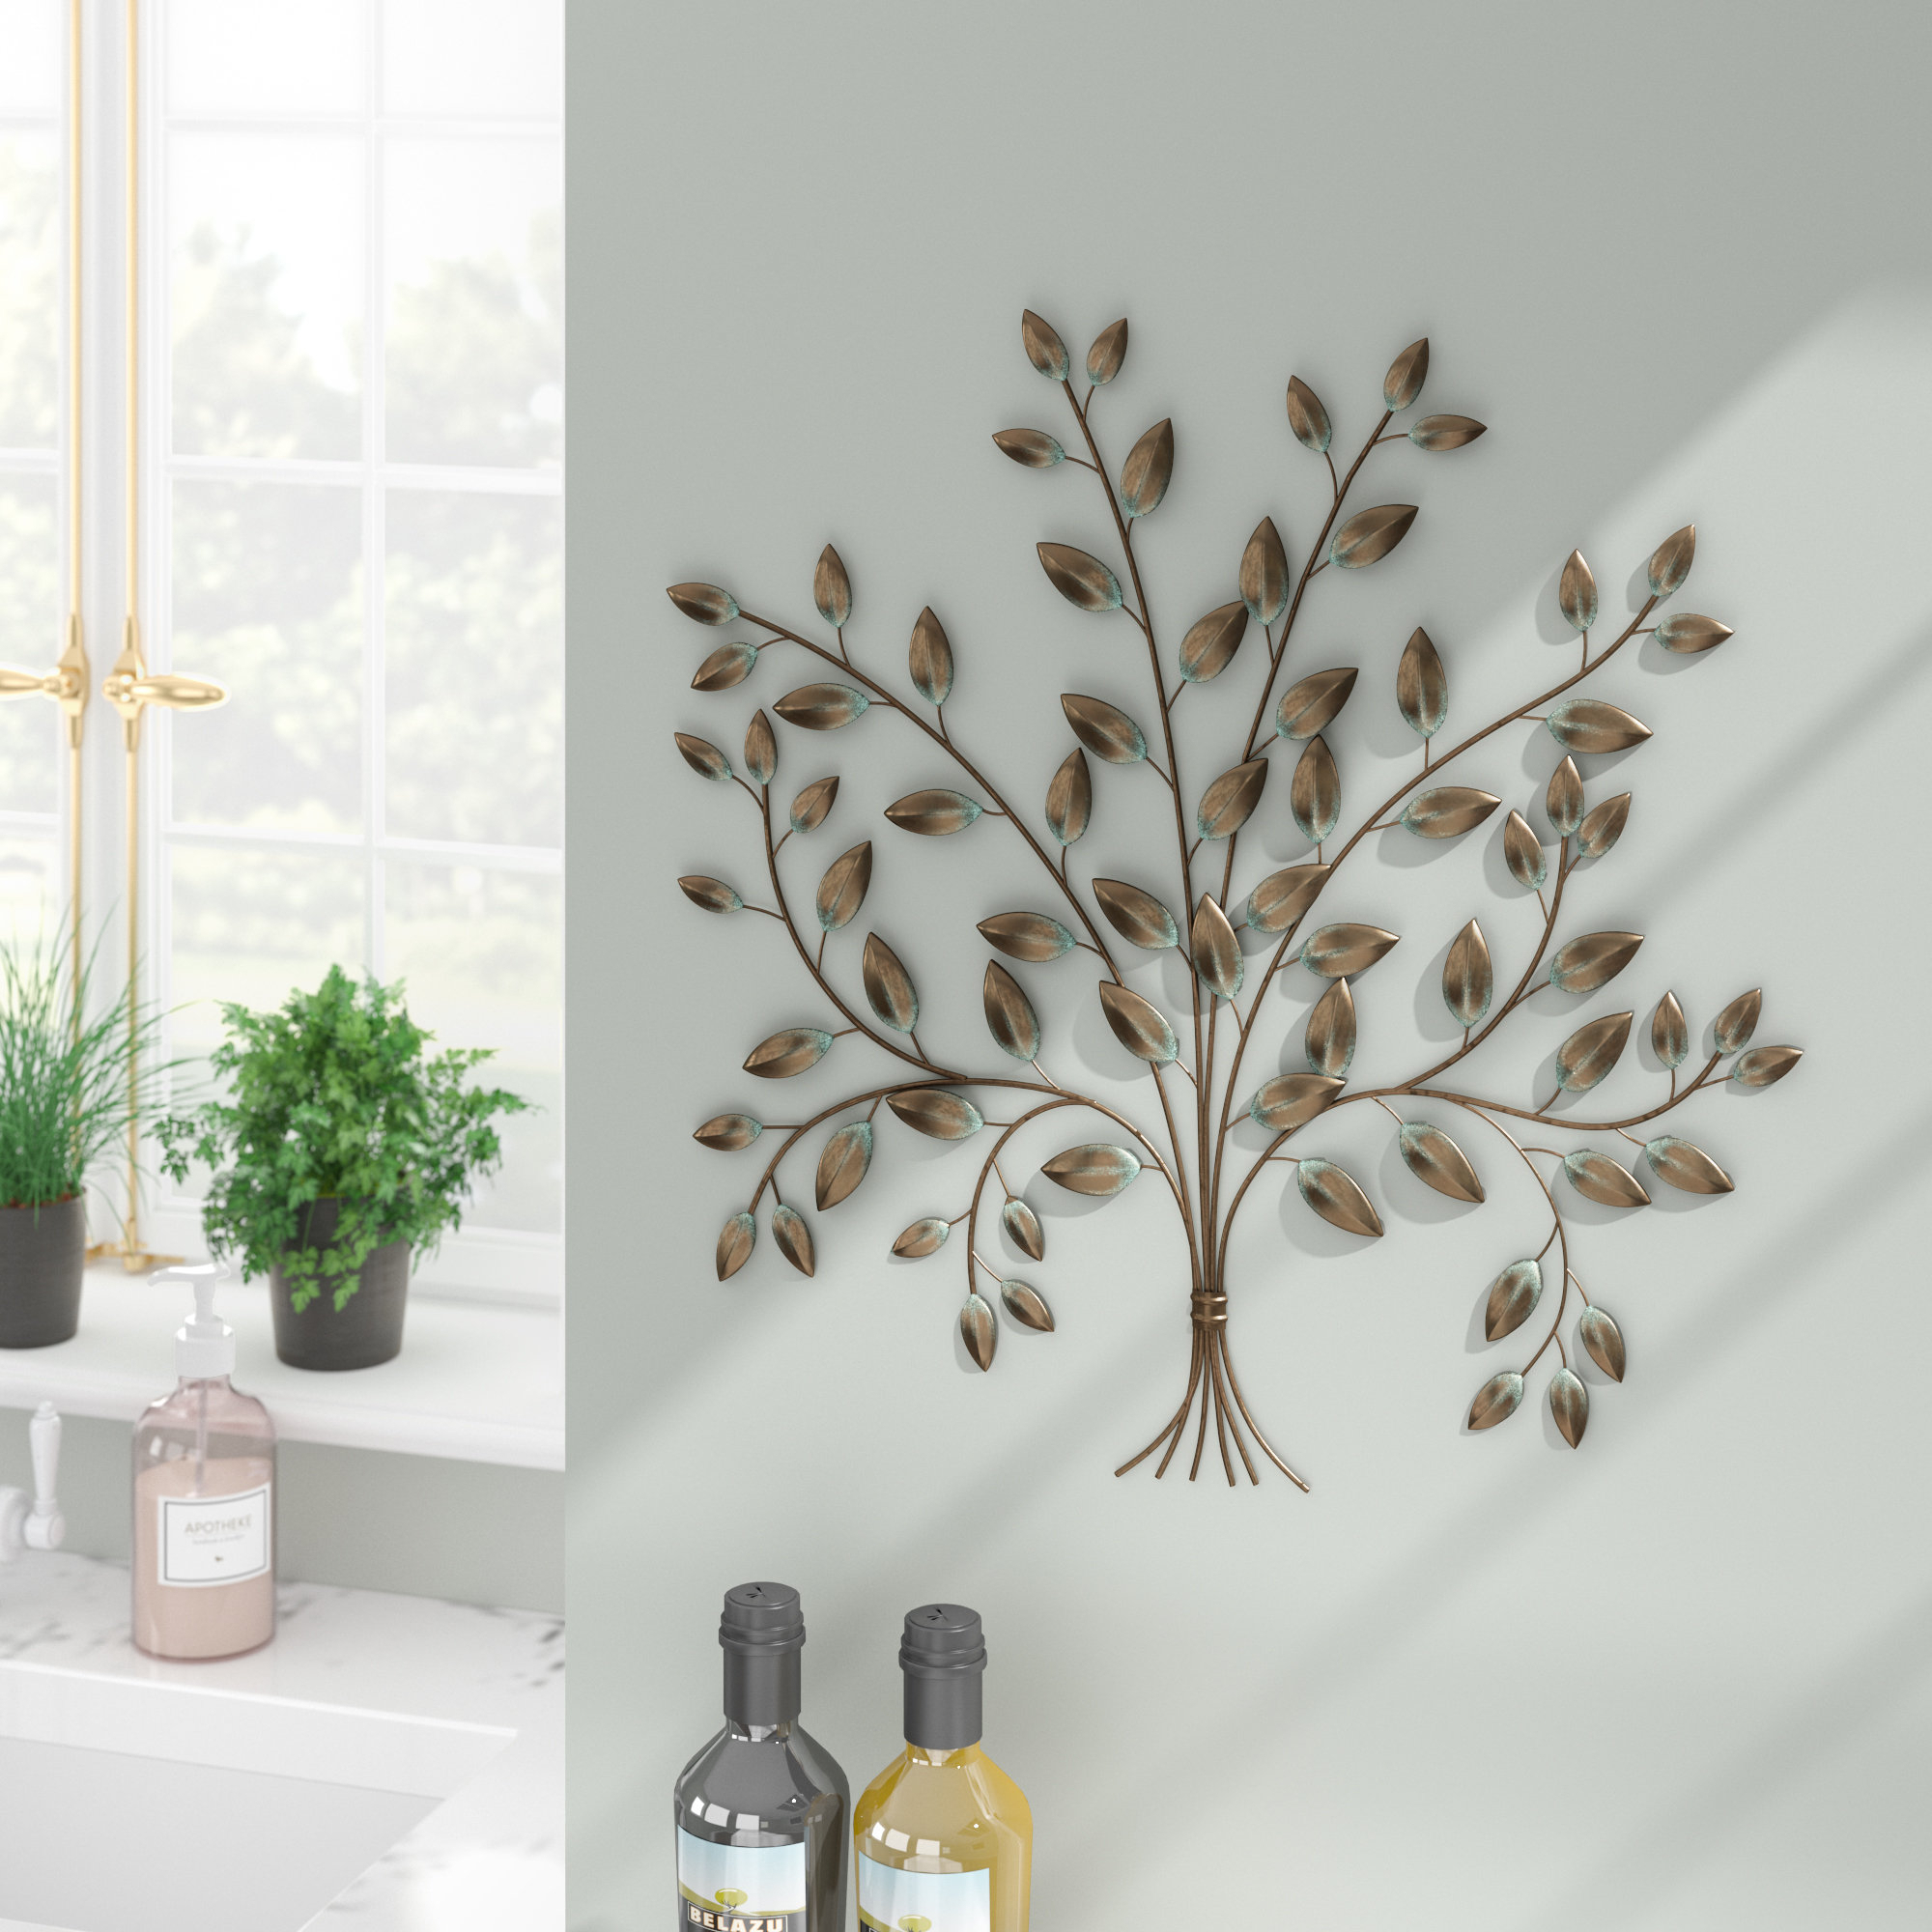 2019 Popular Windswept Tree Wall Decor In Windswept Tree Wall Decor By World Menagerie (View 4 of 30)